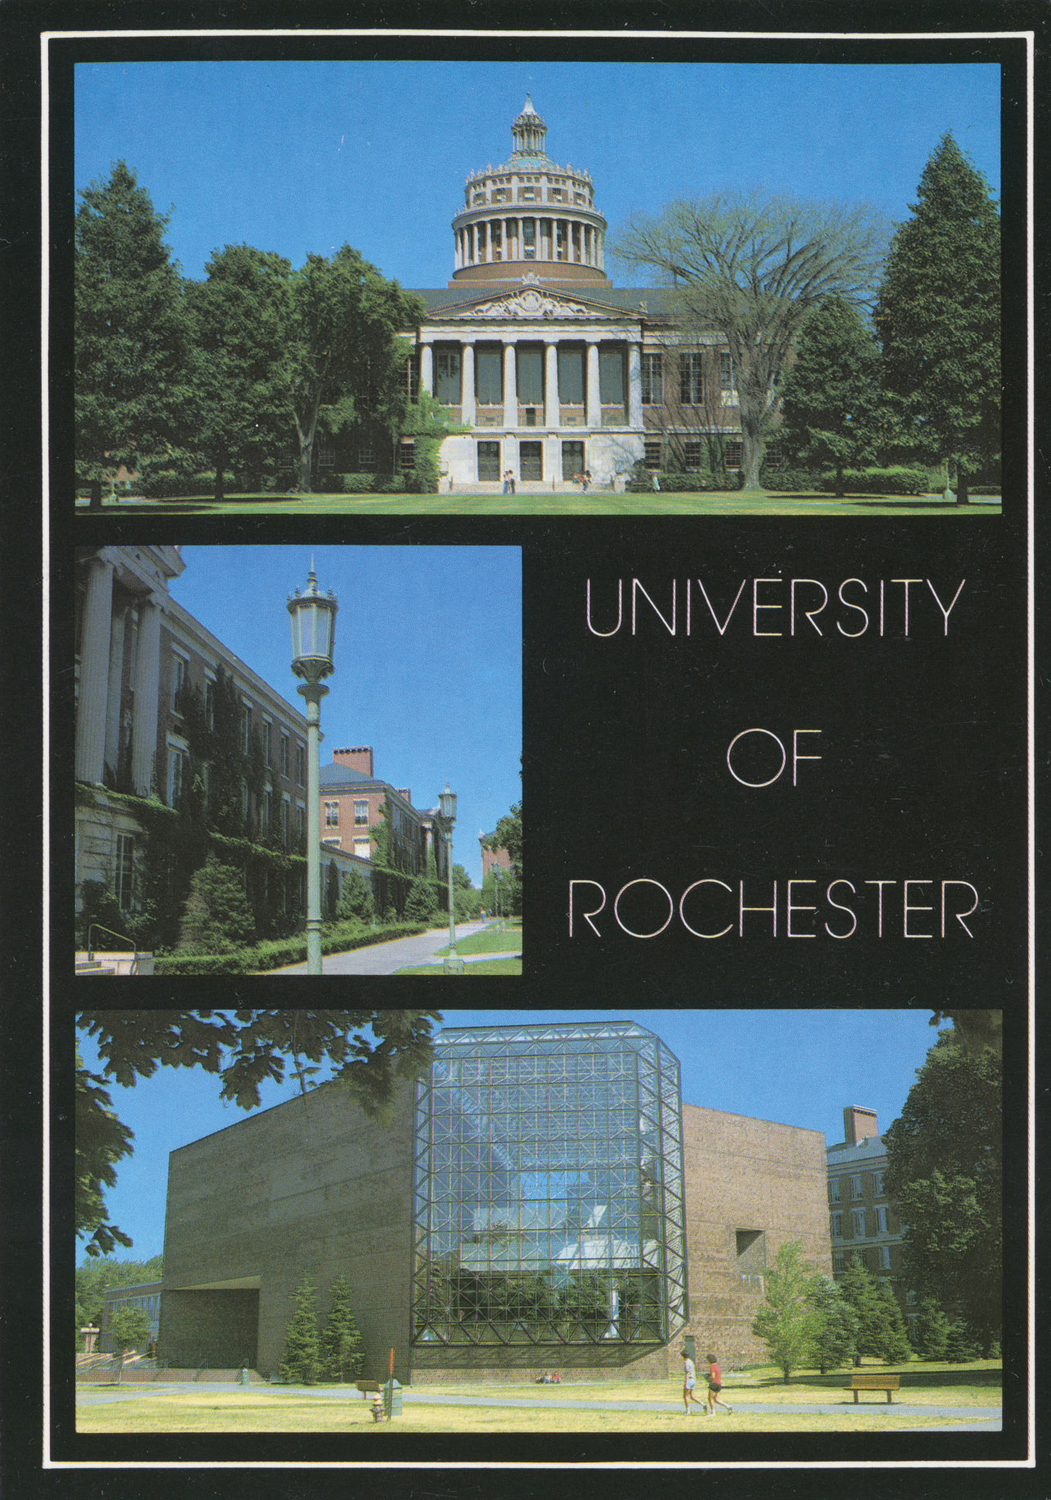 University of Rochester.